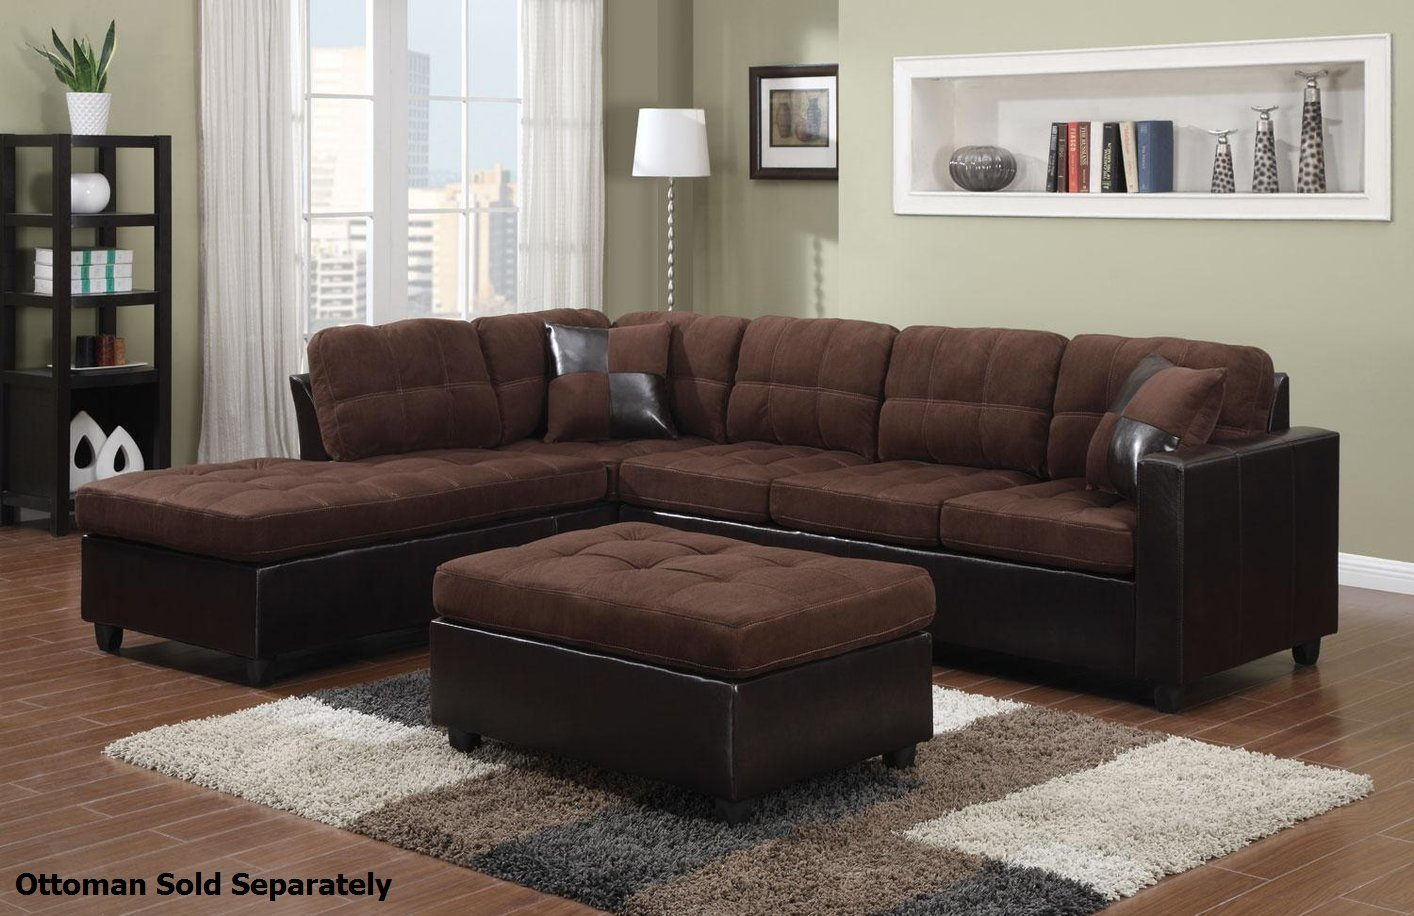 Coaster mallory 505655 brown fabric sectional sofa steal for Sectional couch